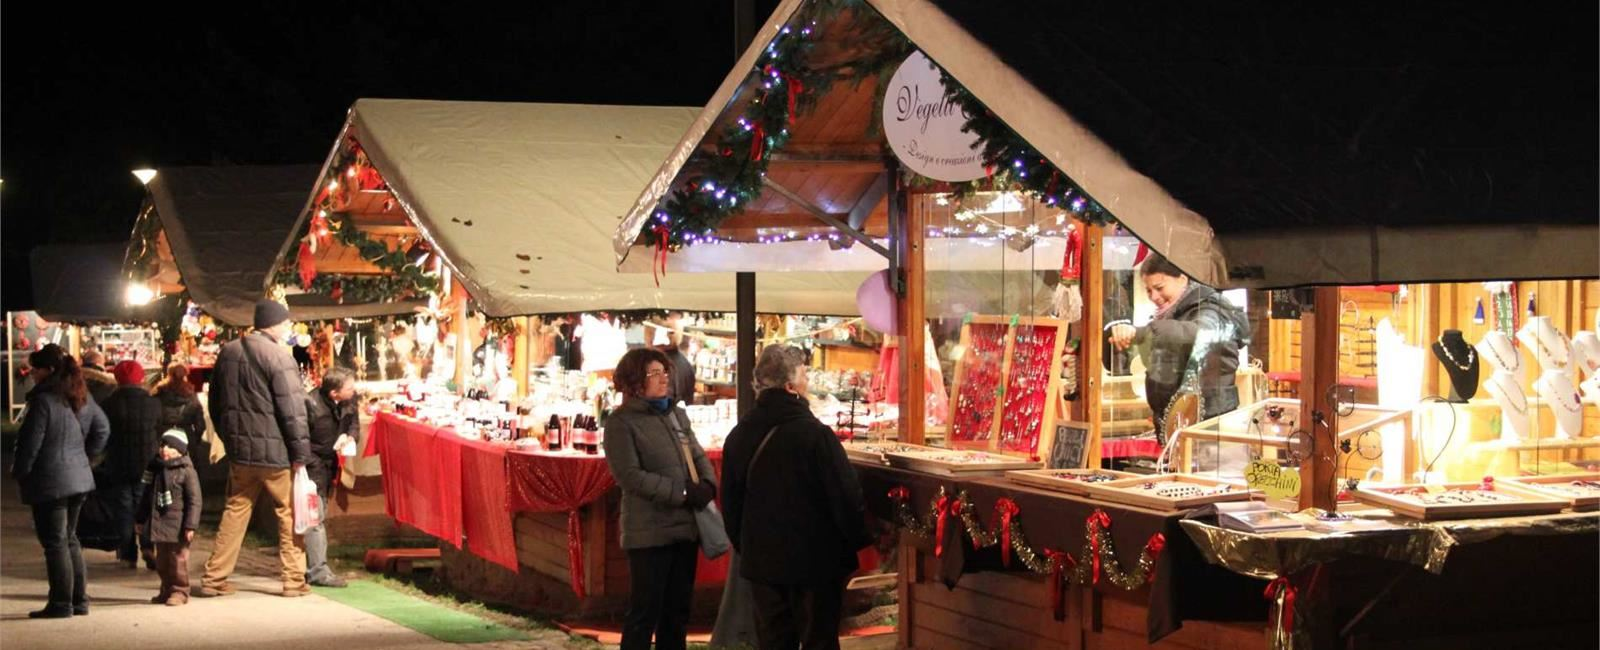 ENJOY THE CHRISTMAS MARKETS ATMOSPHERE IN VALSUGANA!